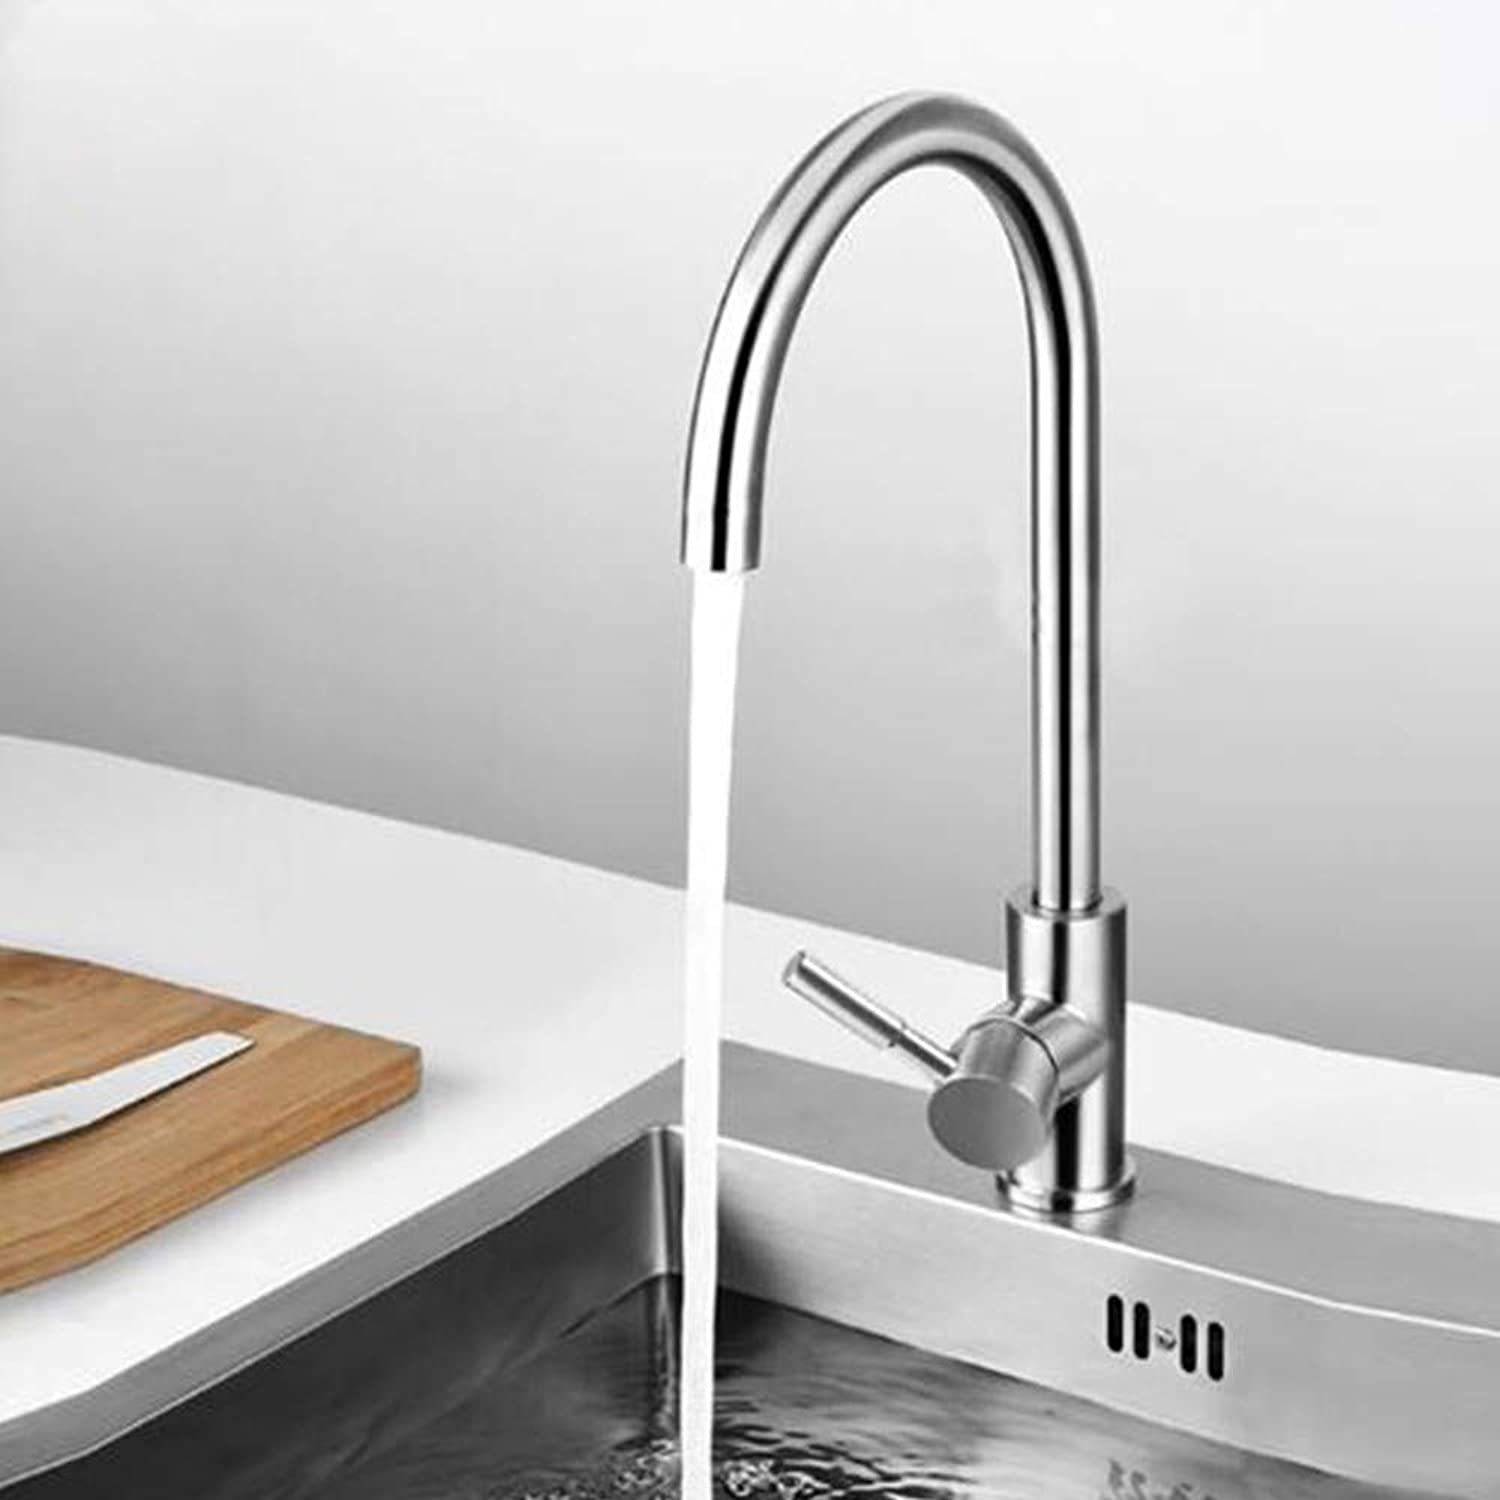 Water Tap Modern Kitchen Copper Main Body Hot and Cold Stainless Steel Sink Mixer Single Handle 360° redating Sink Faucet, Hot and Cold U-Shaped